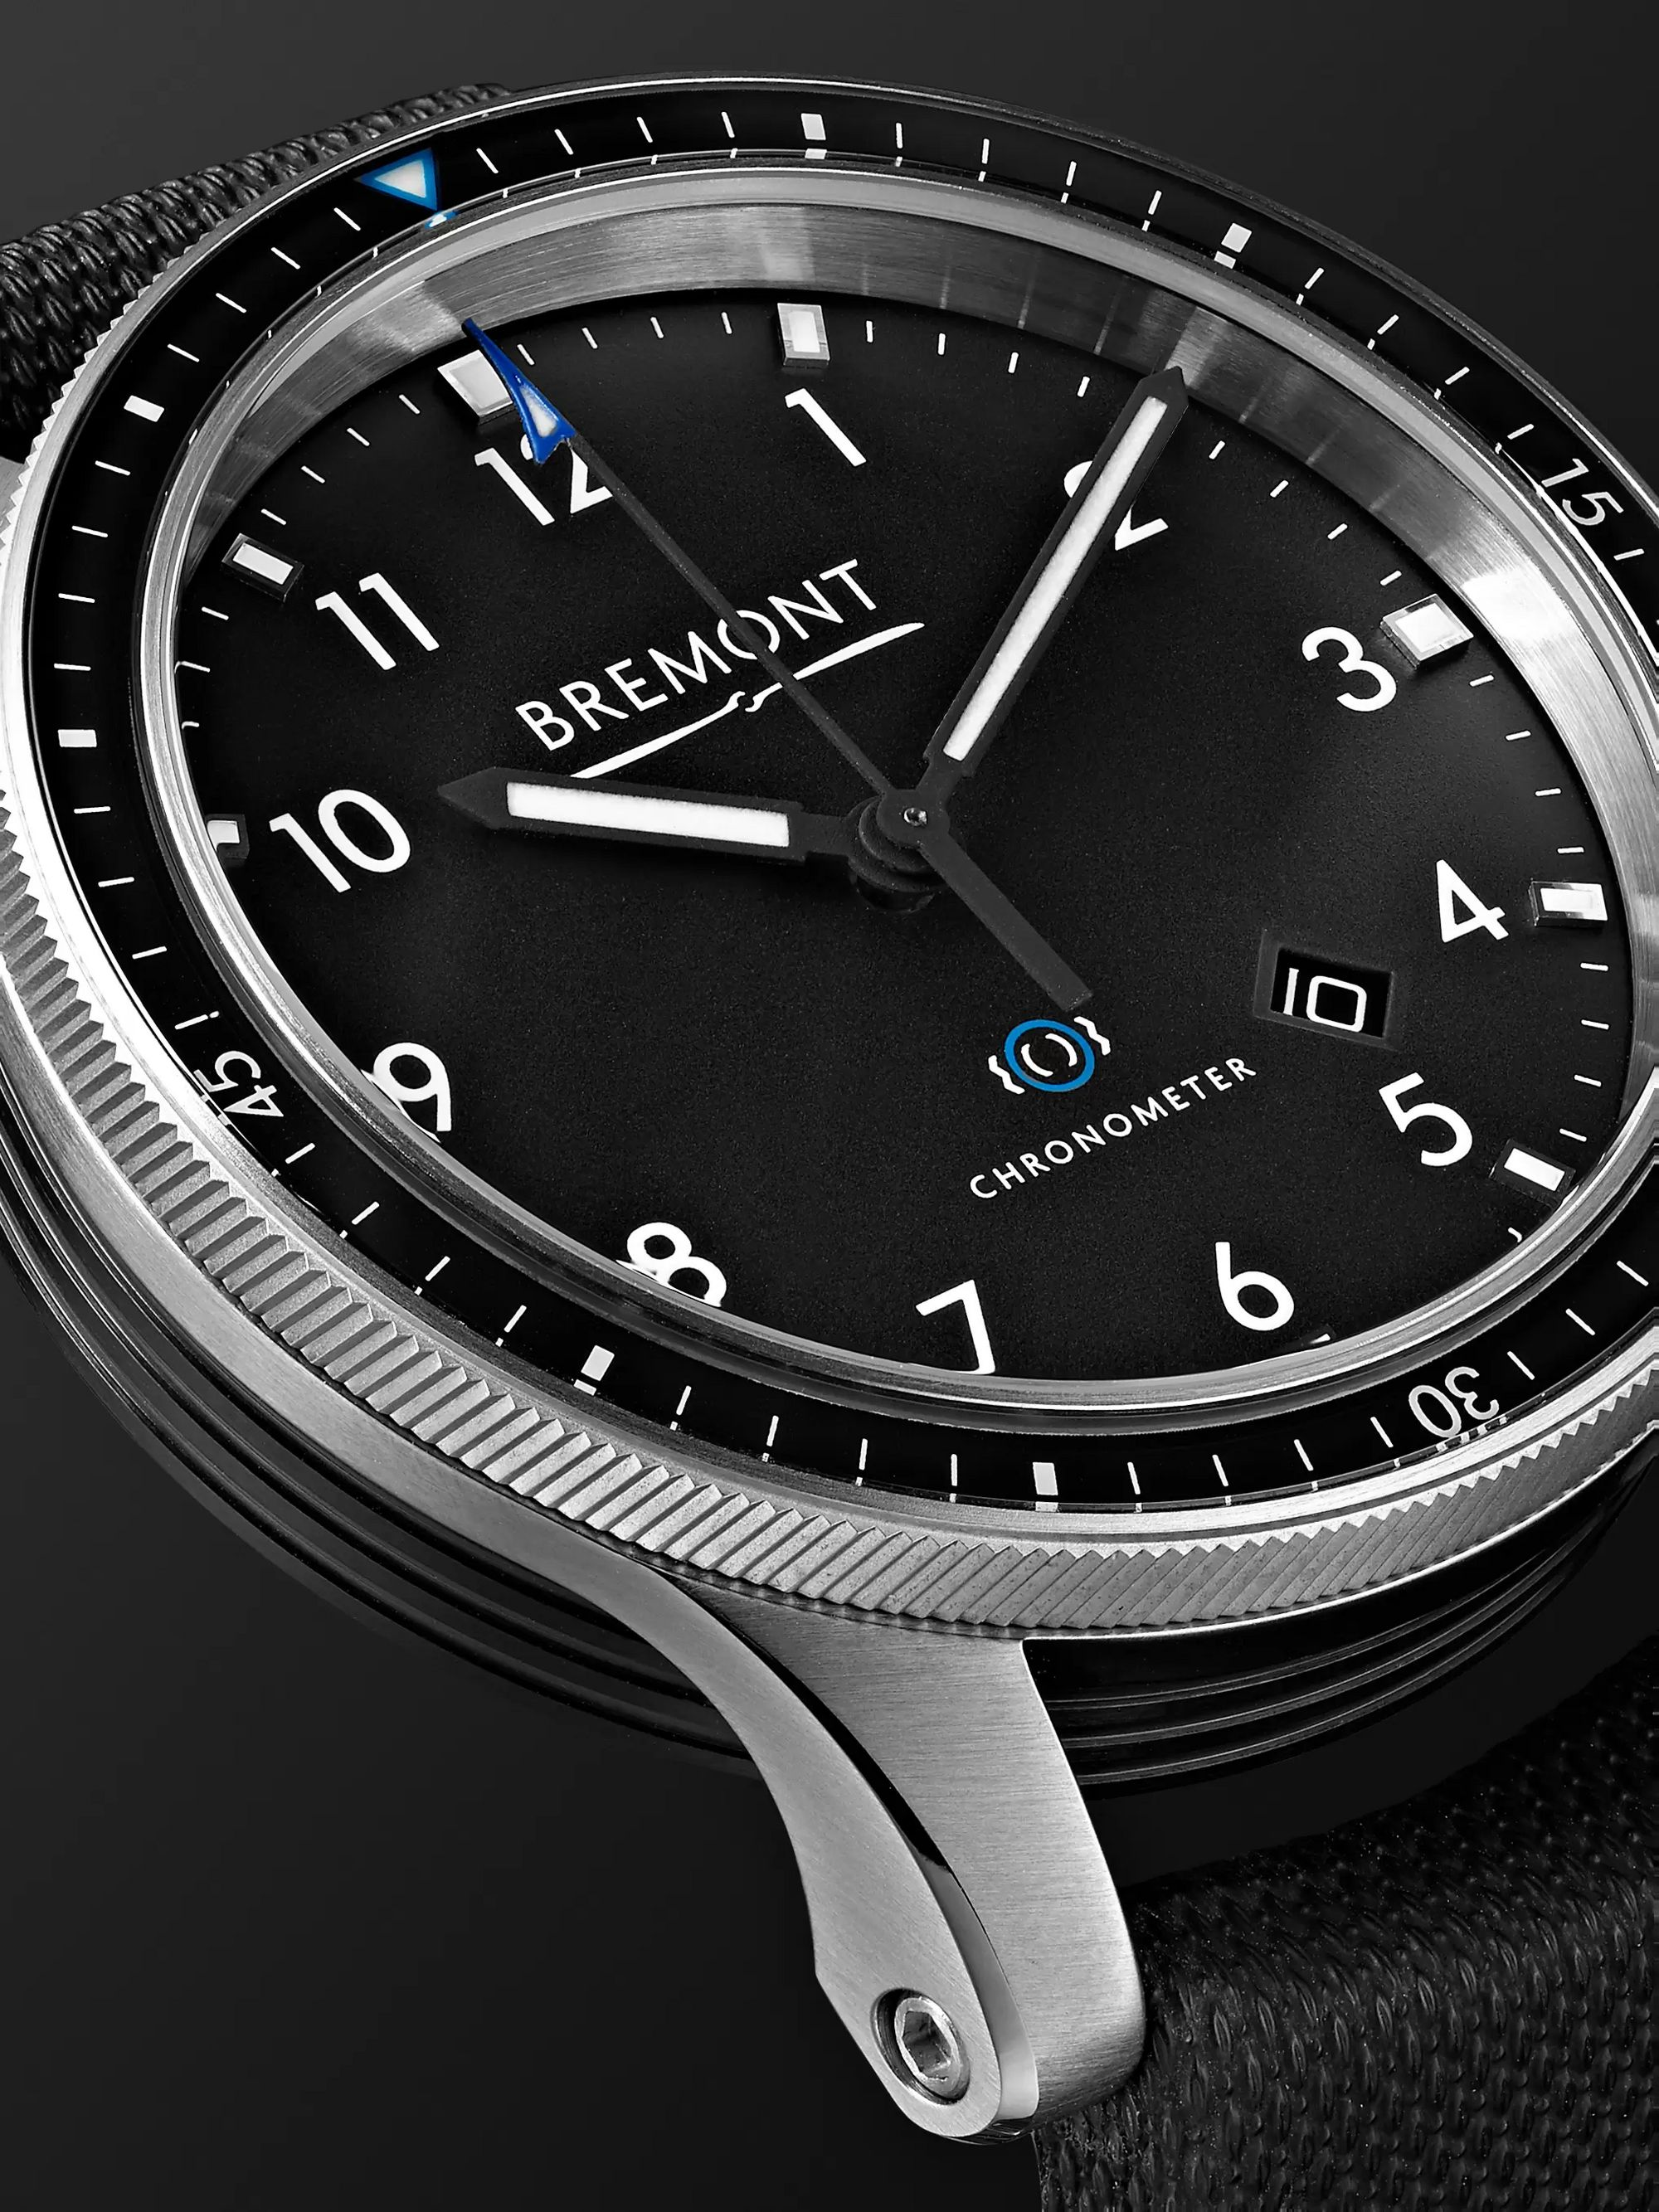 Bremont Model 1 SS/BK Automatic Chronometer 43mm Stainless Steel Watch, Ref. No. MODEL1/BK/SS